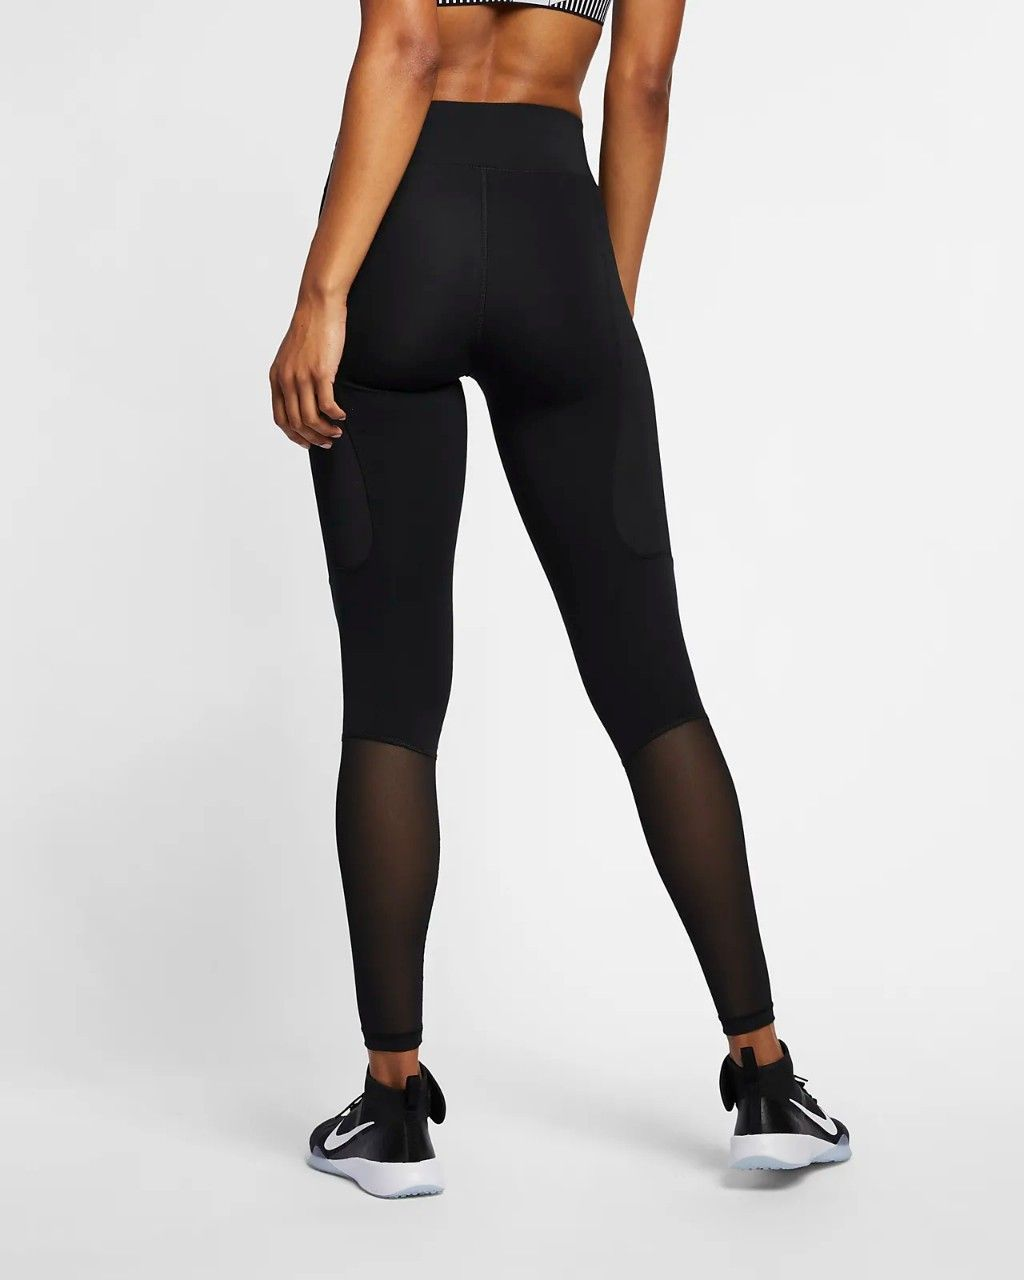 8549f021c2fa0e Nike women's pro hypercool tights Black mesh sizes S M L. Mesh Panel,  Active Wear, Spandex, High Intensity Training, Outer Thighs, Tights